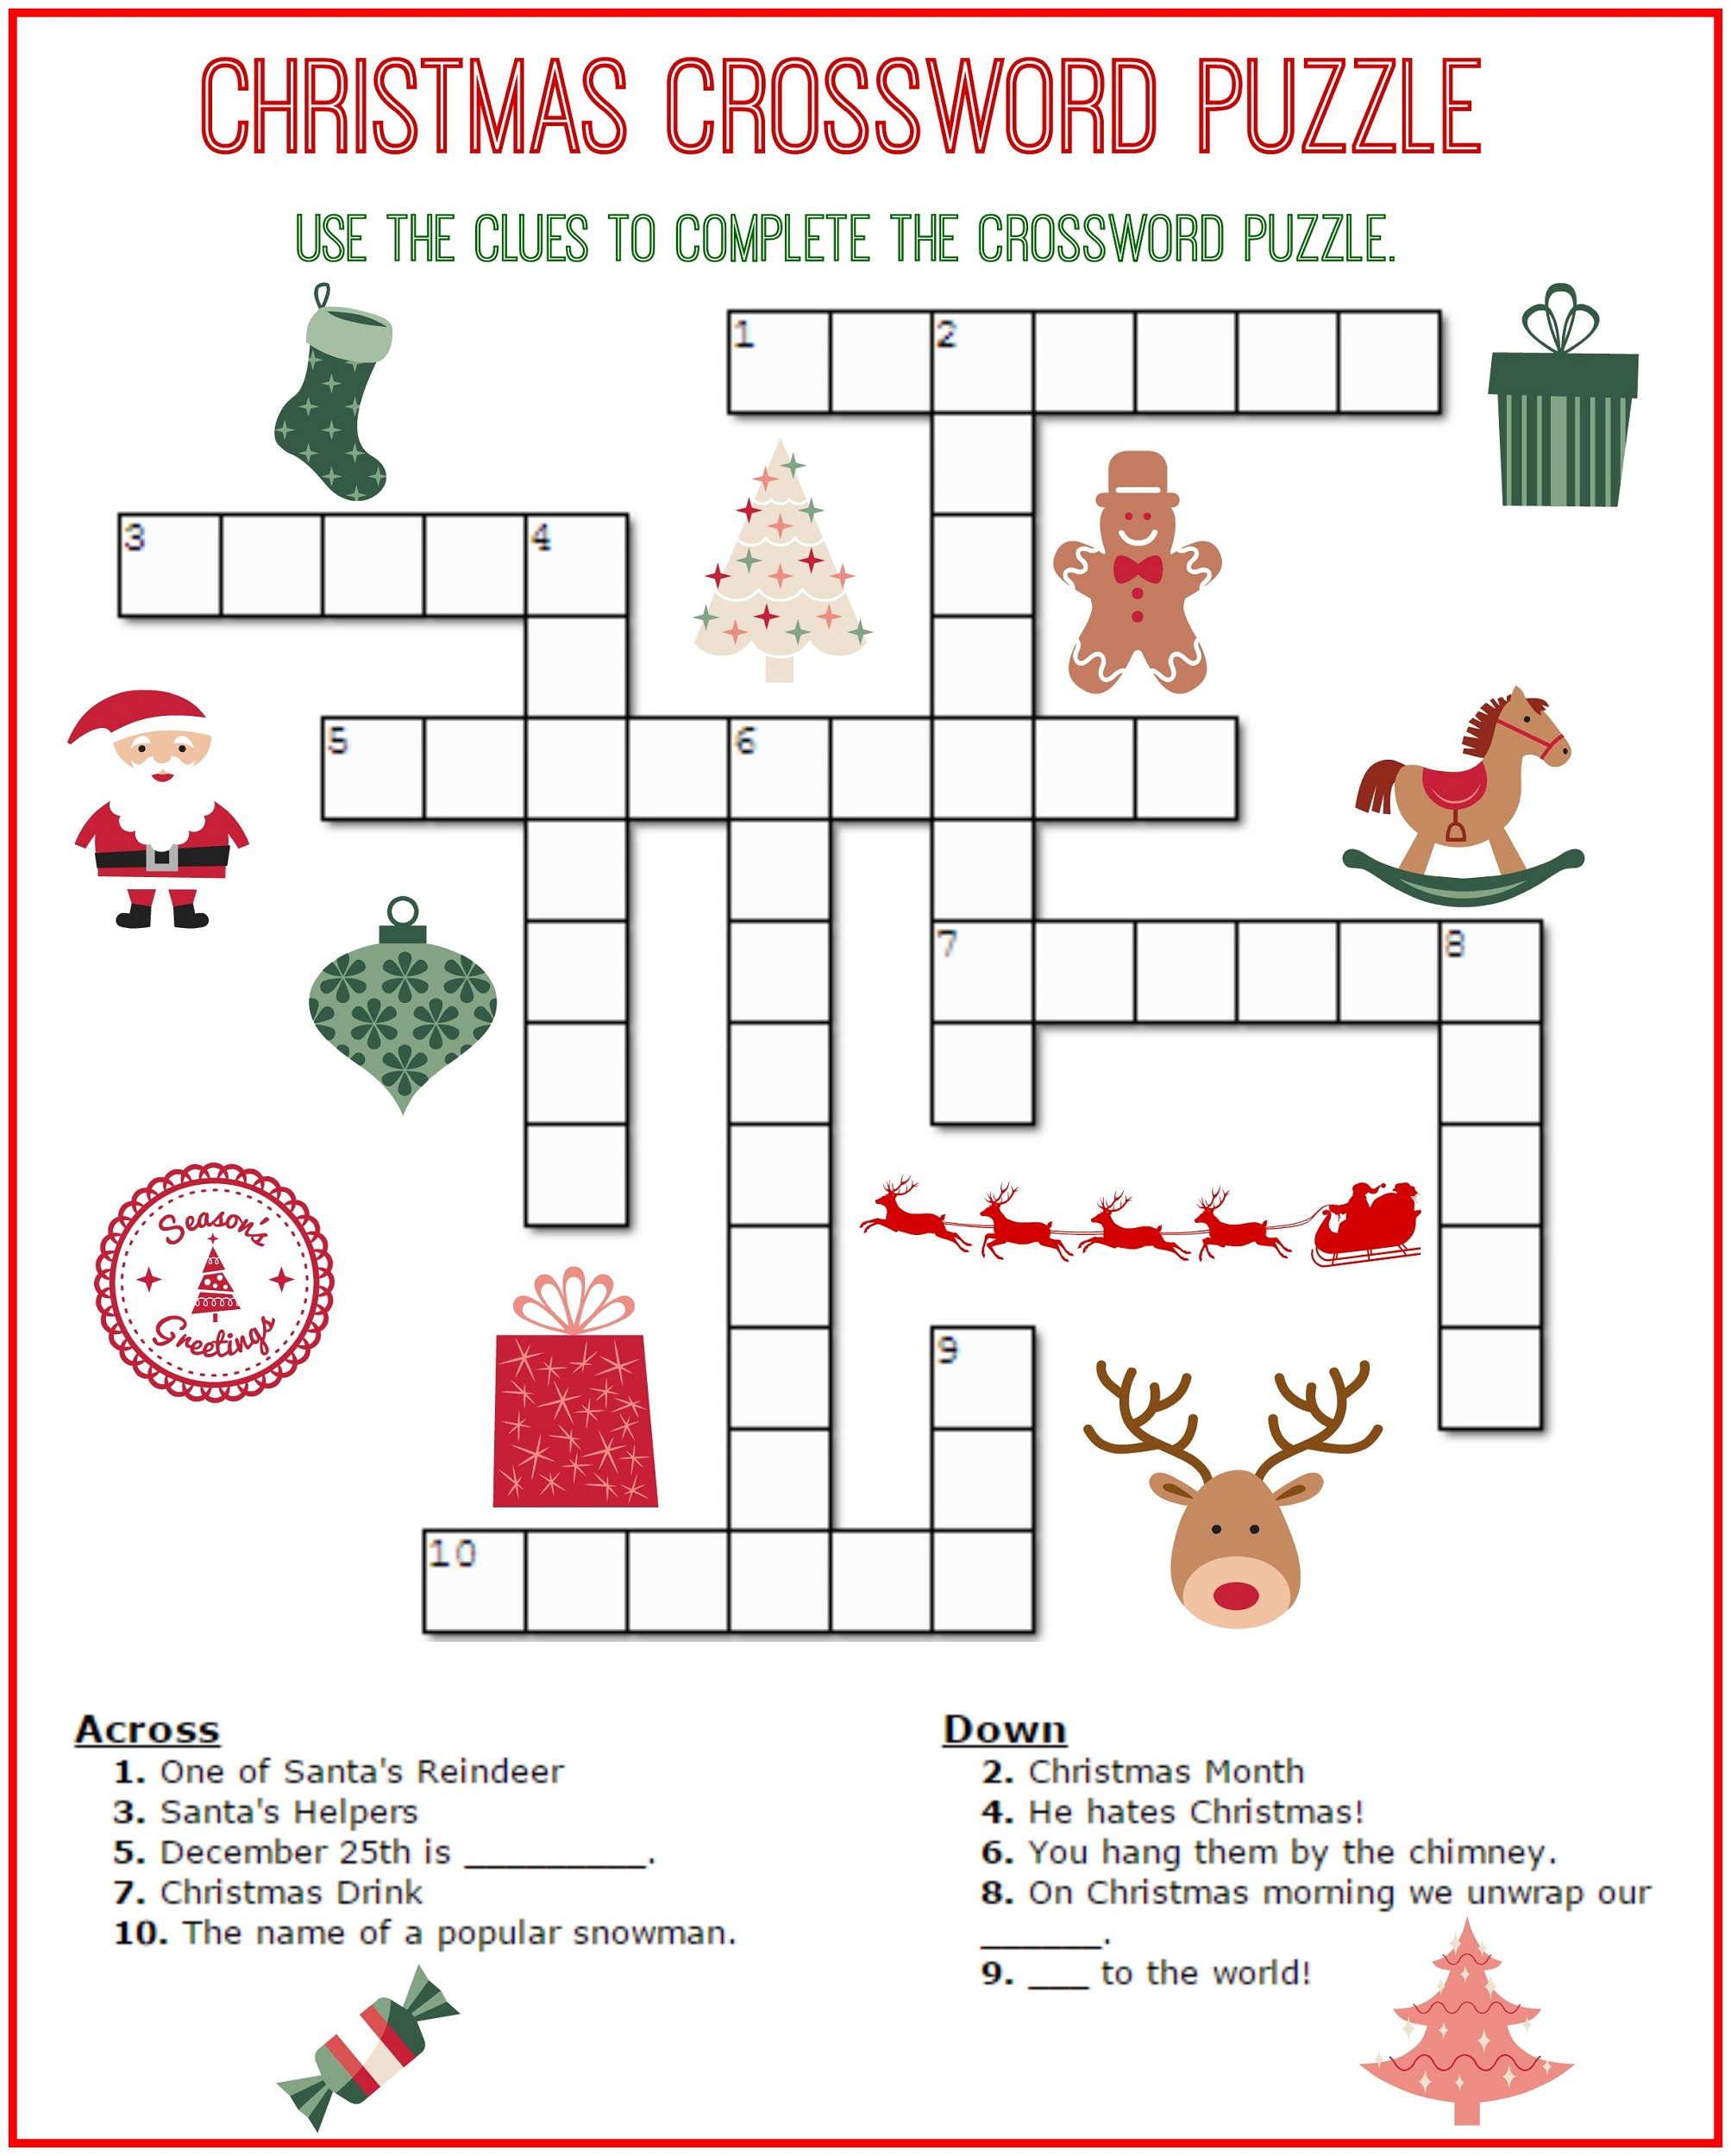 Crossword Puzzle Kids Printable 2017 | Kiddo Shelter - Crossword Puzzles For Kindergarten Free Printable